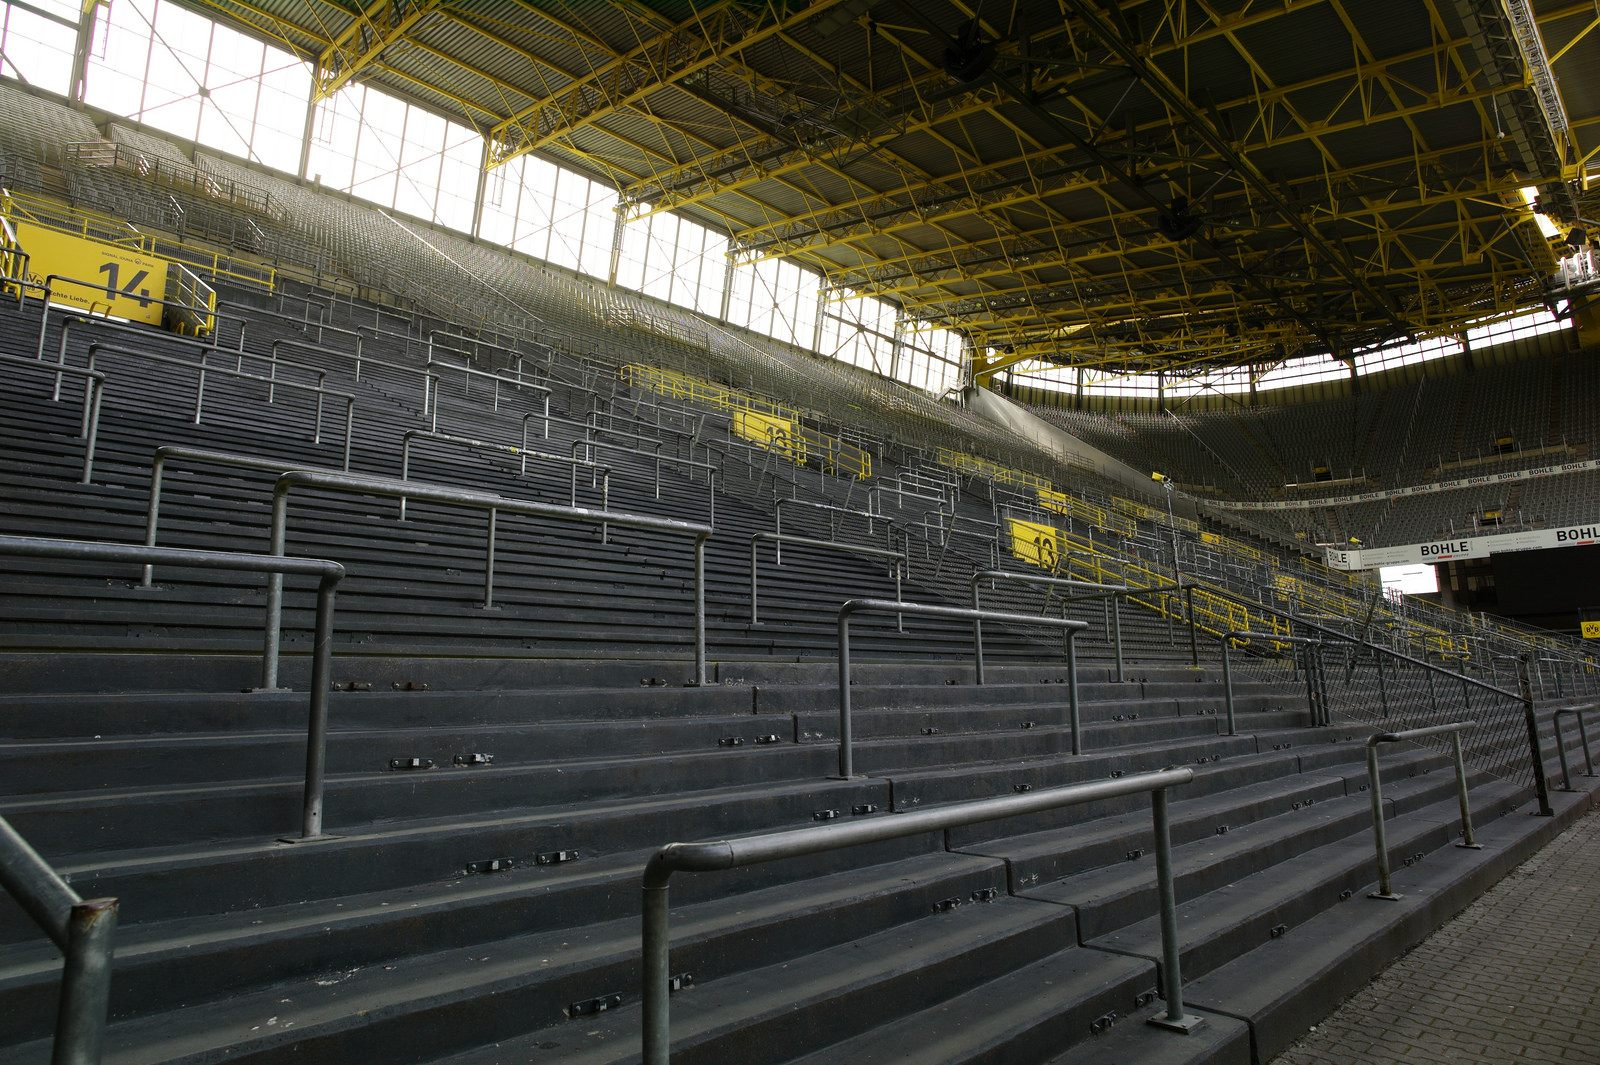 Bundesliga - empty stands at Westfalenstadion